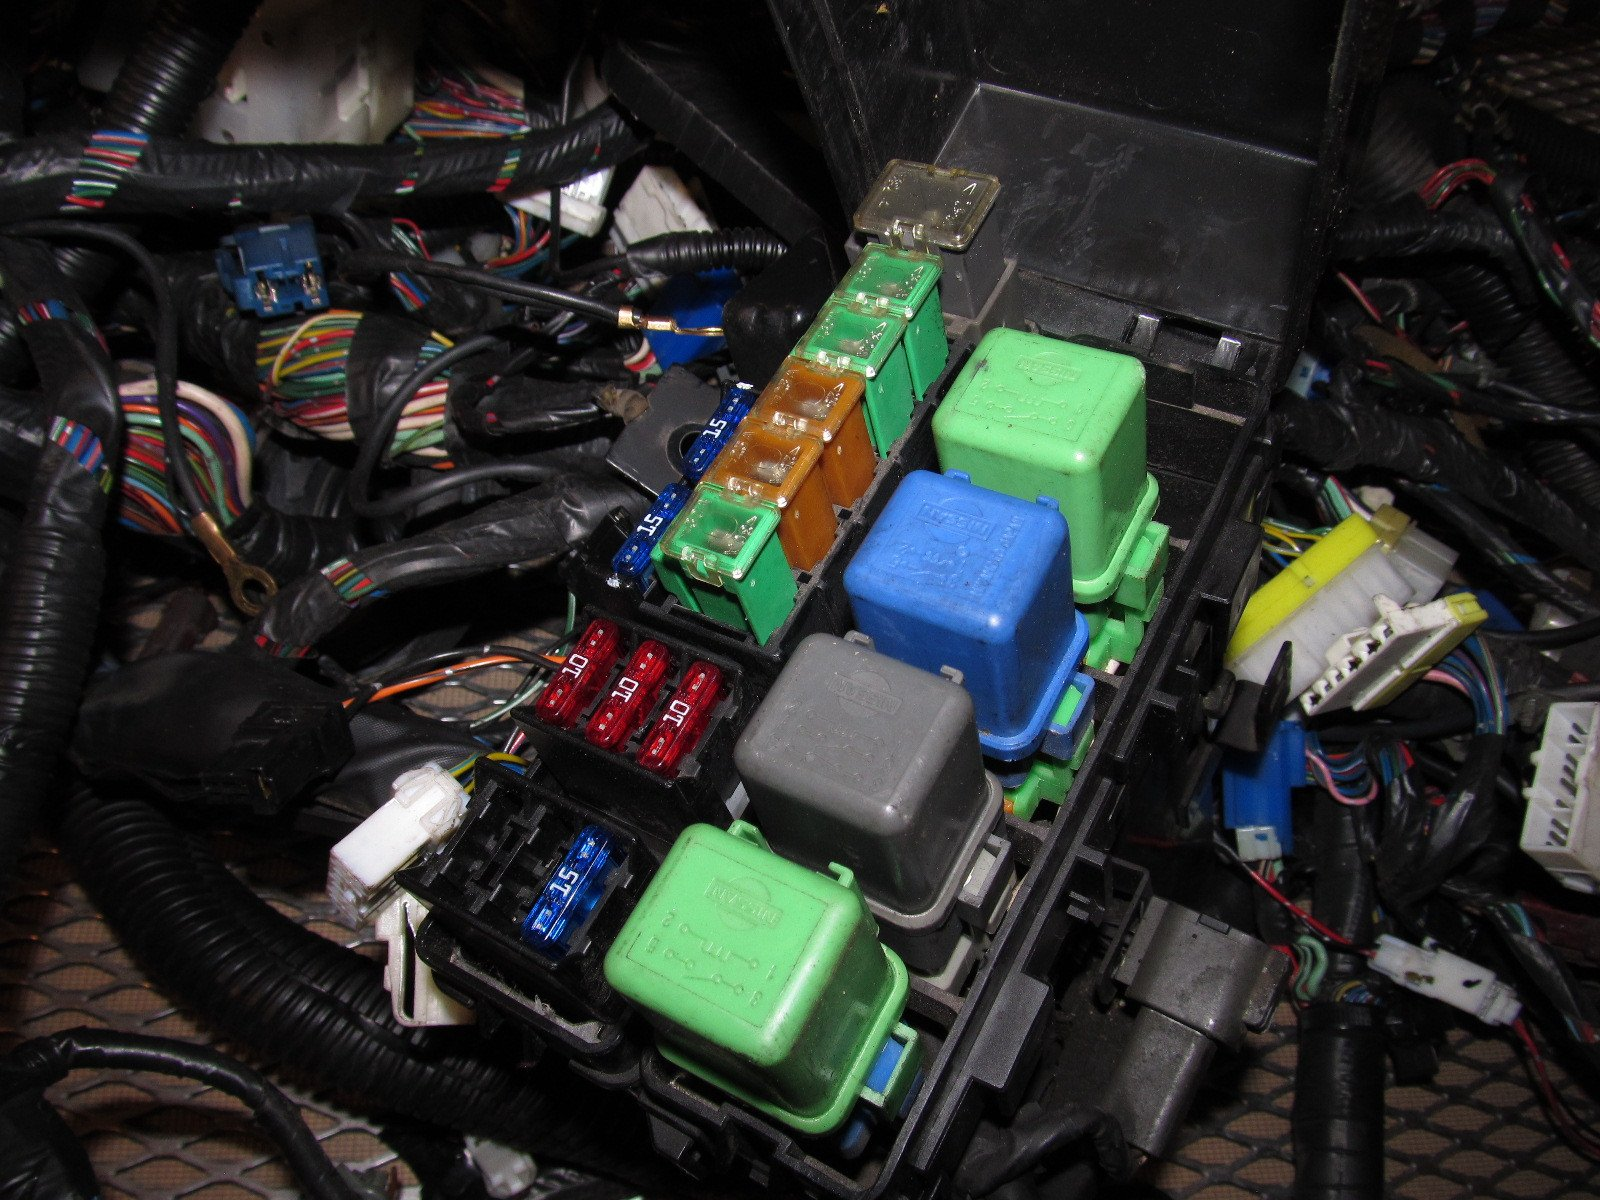 s13 240sx fuse box - show wiring diagram space-a -  space-a.controversoquotidiano.it  controversoquotidiano.it